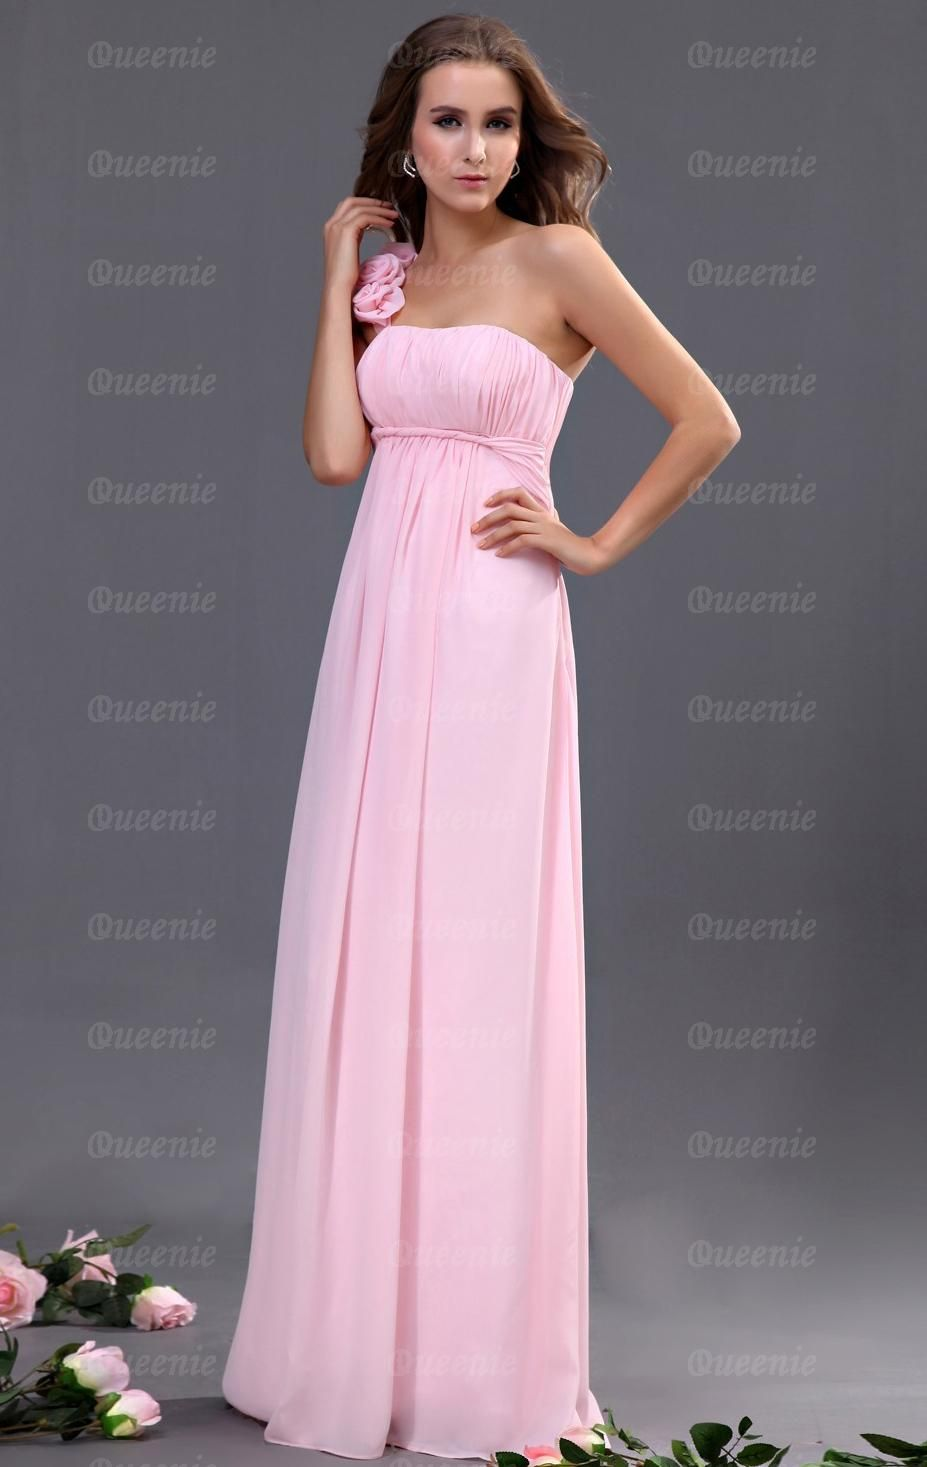 Navy and pink bridesmaid dresses google search wedding ideas luxury sheathcolumn floor length one shoulder sleeveless zipper chiffon pink bridesmaid dresses ombrellifo Gallery